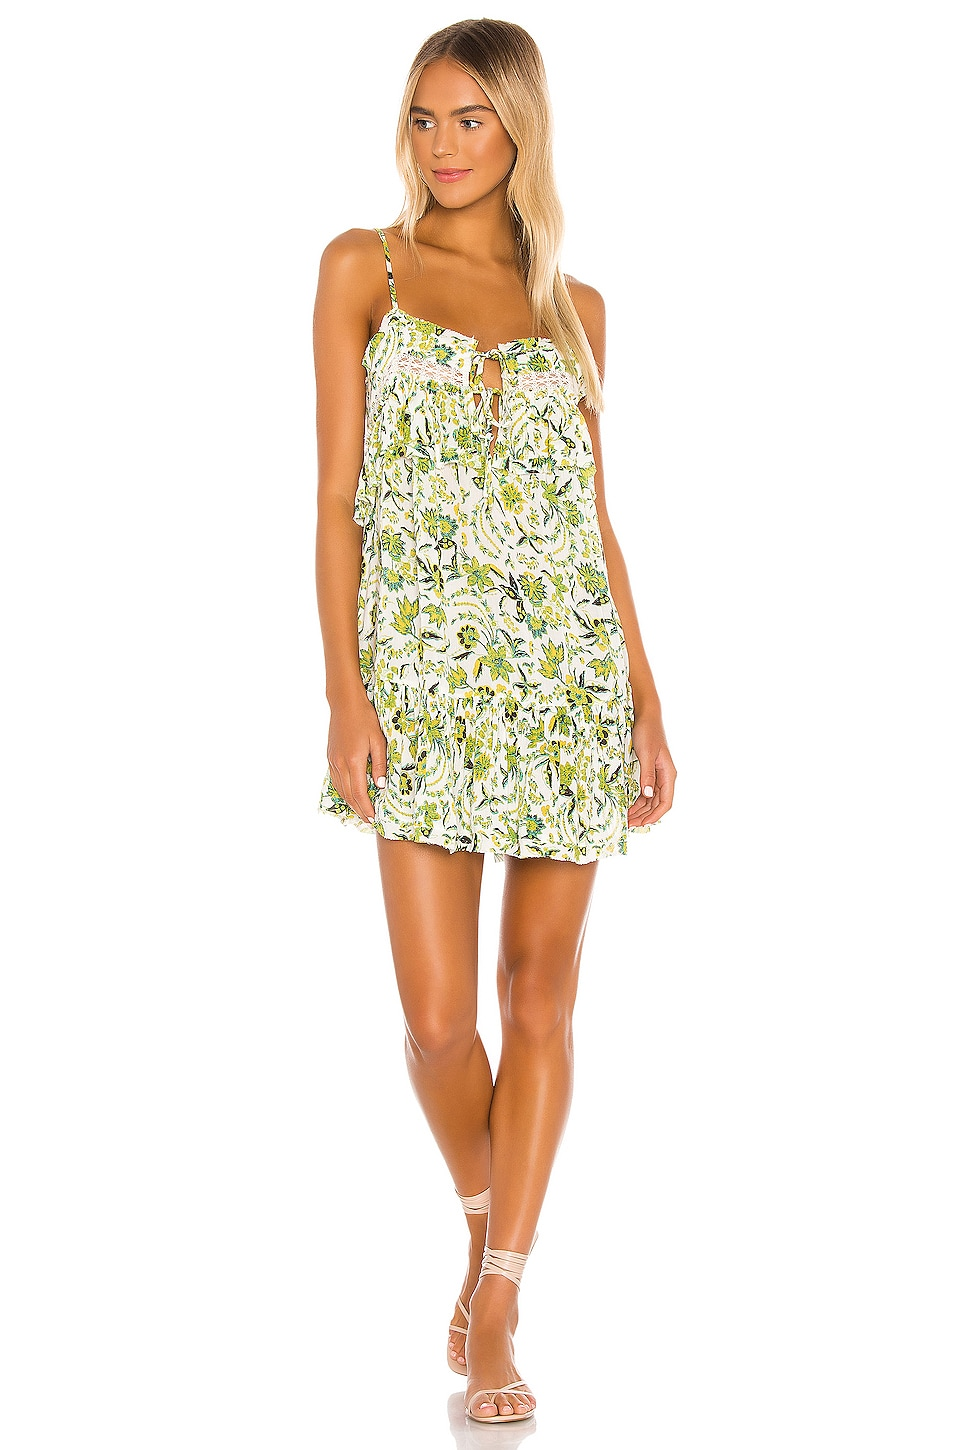 Free People Take Me With You Ruffle Dress in Ivory